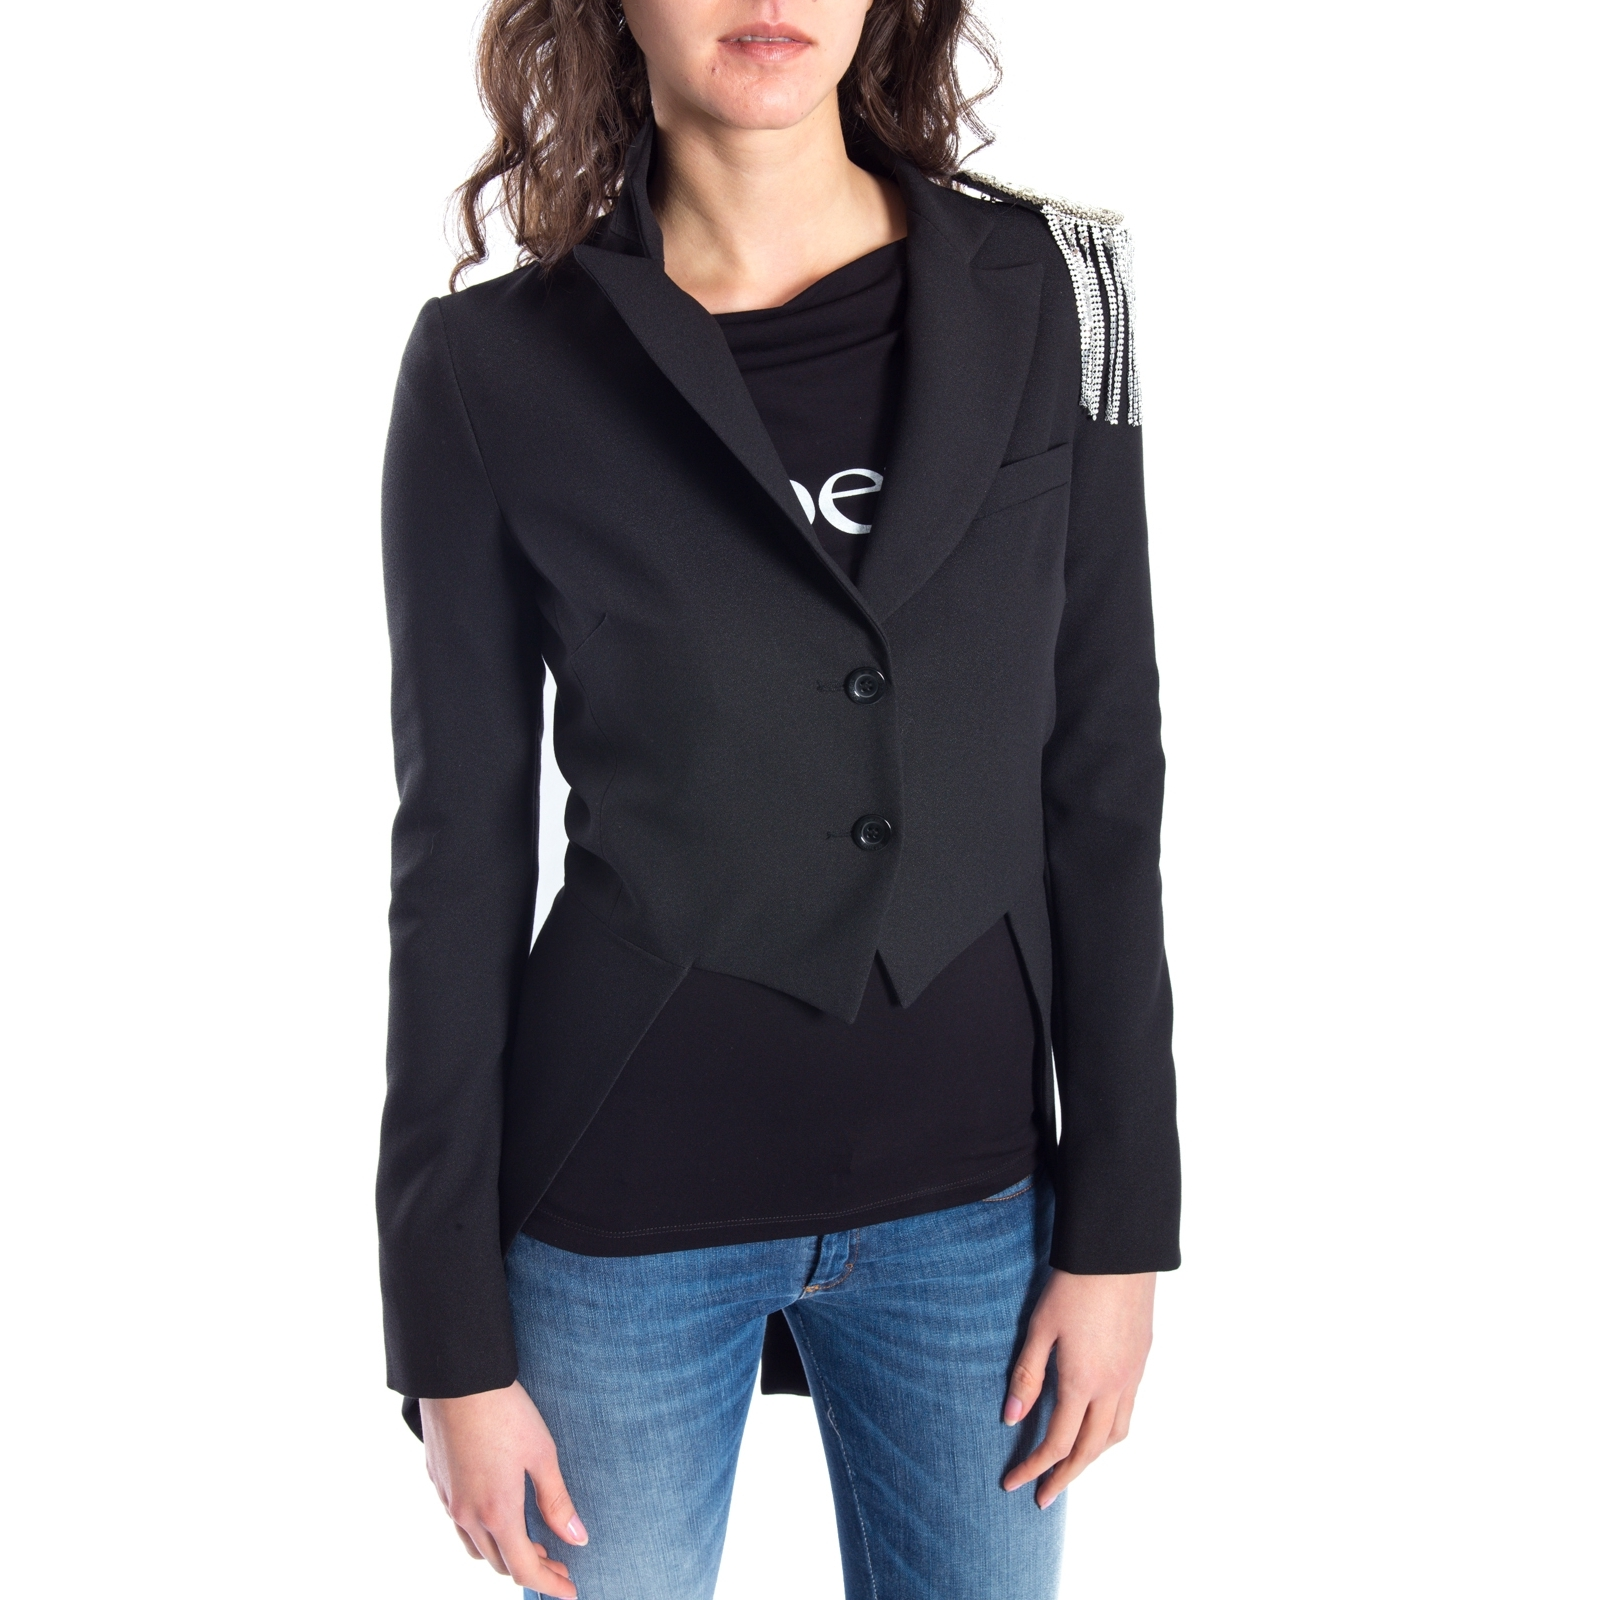 prices lanvin iqydbbzm embellished blazer womenlanvin brooch floral crystal crystalembellished blazersincredible blazers black women p incredible